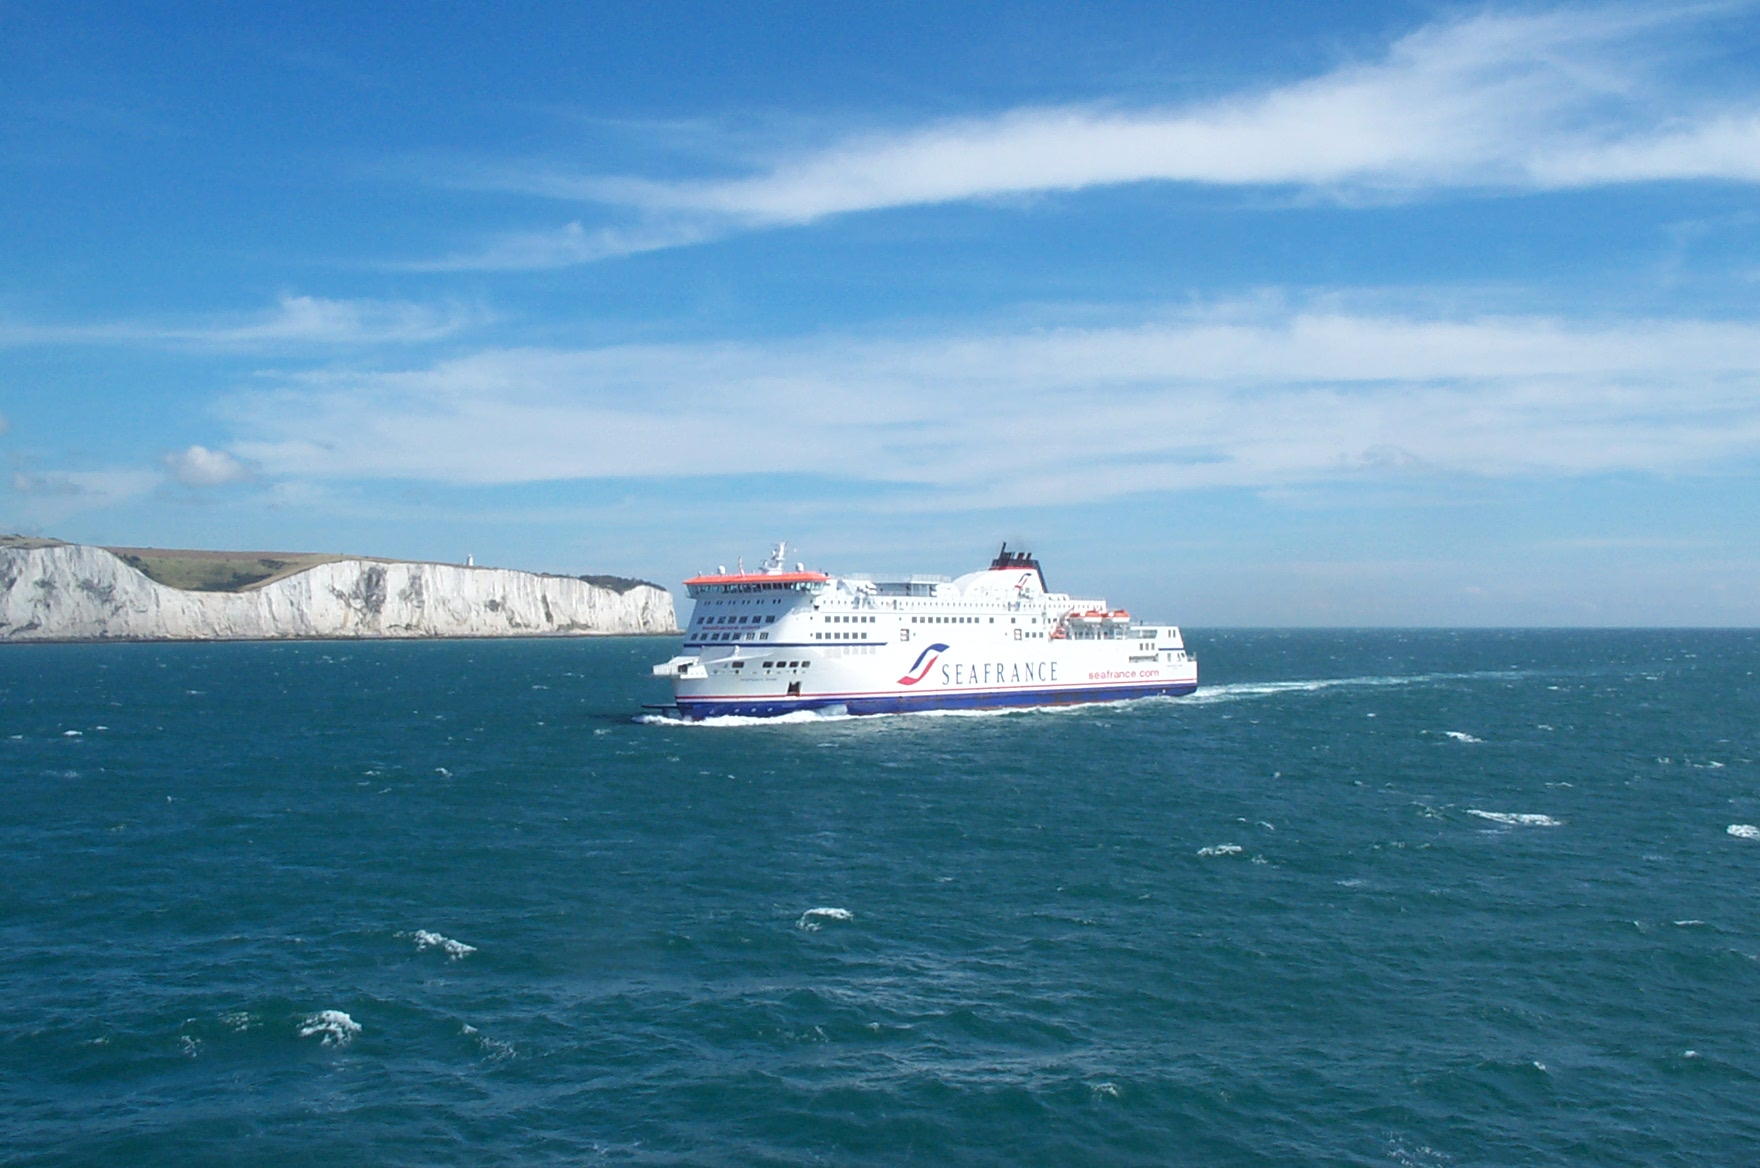 Crossing_the_English_Channel_%28Le_Manche%29._White_cliffs_of_Dover_in_background.jpg?profile=RESIZE_400x